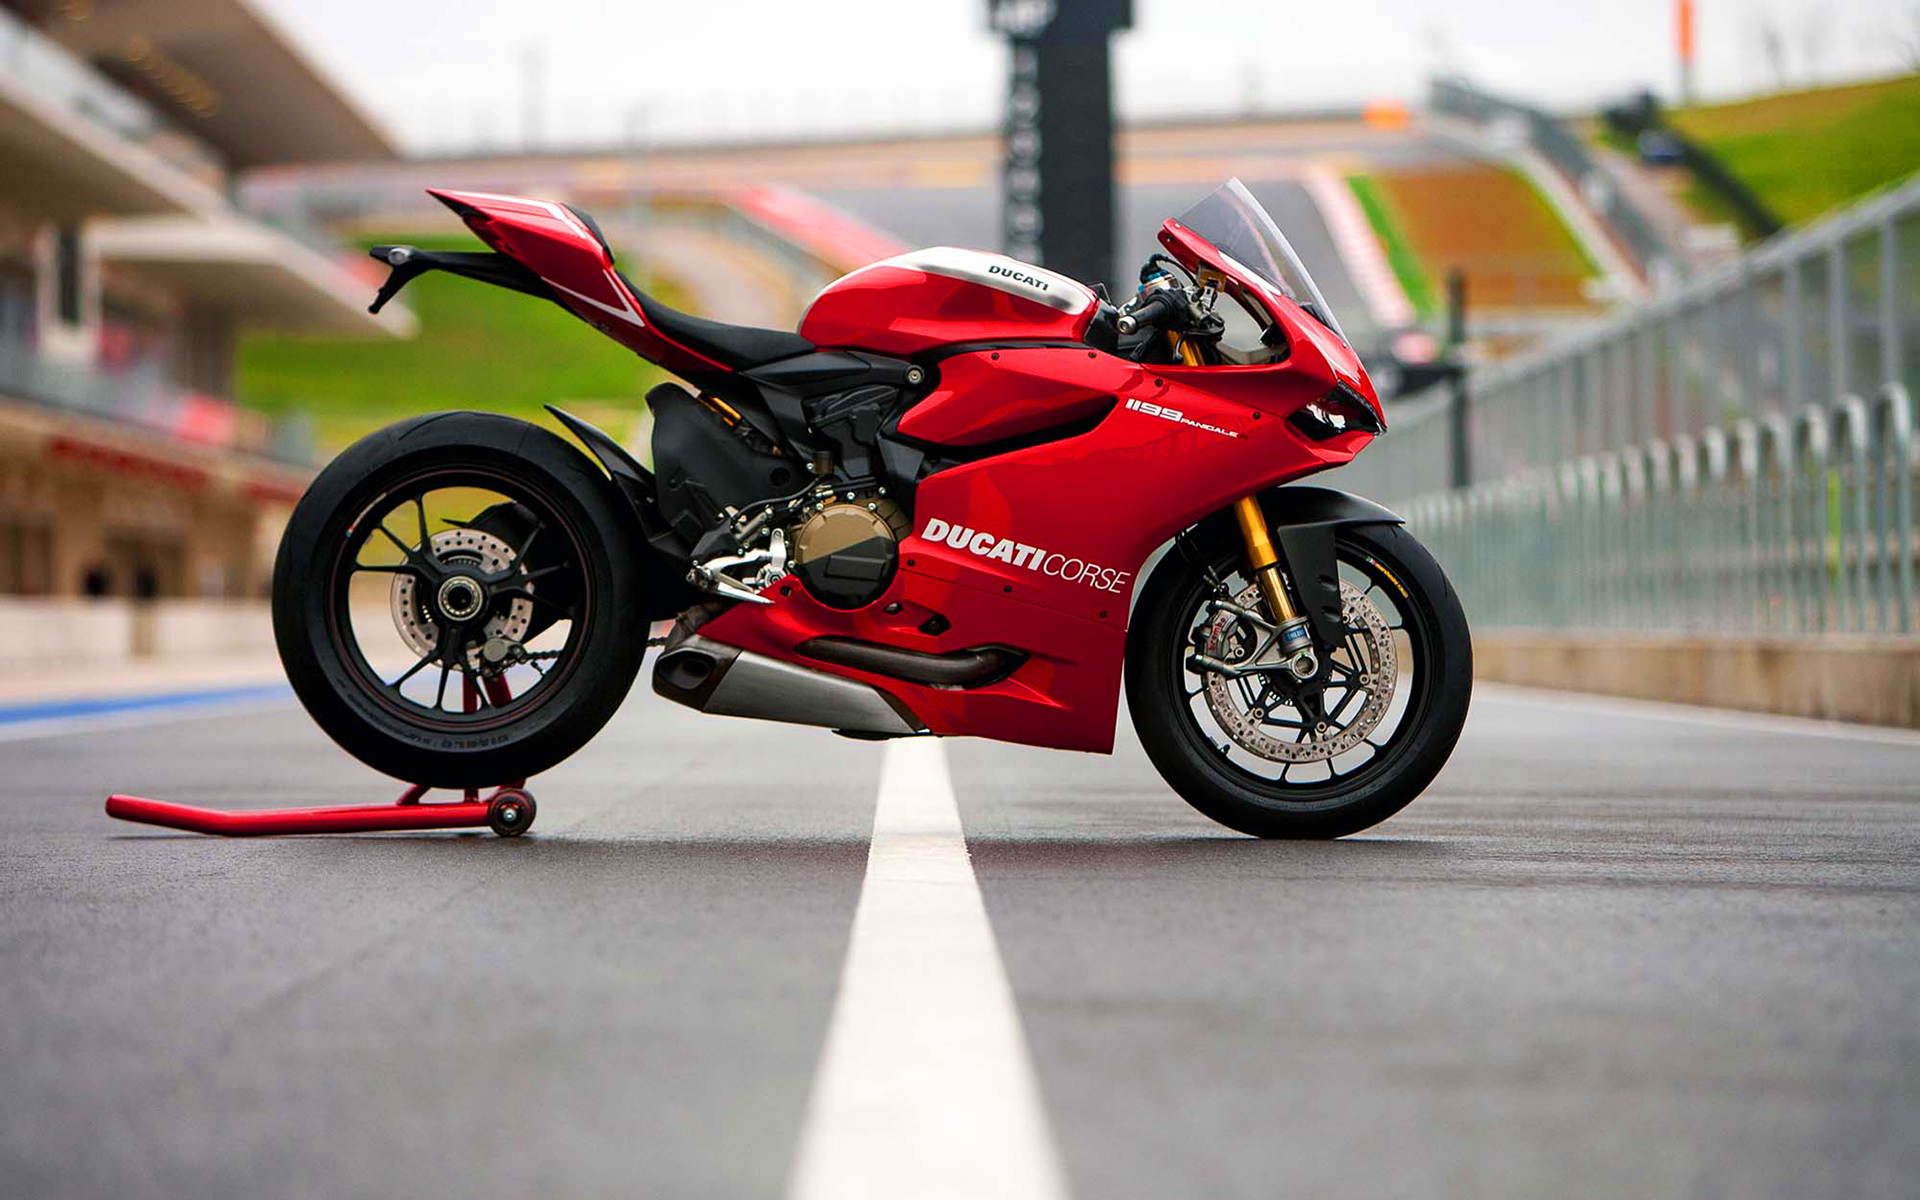 Ducati Wallpapers HD | wallpaper.wiki